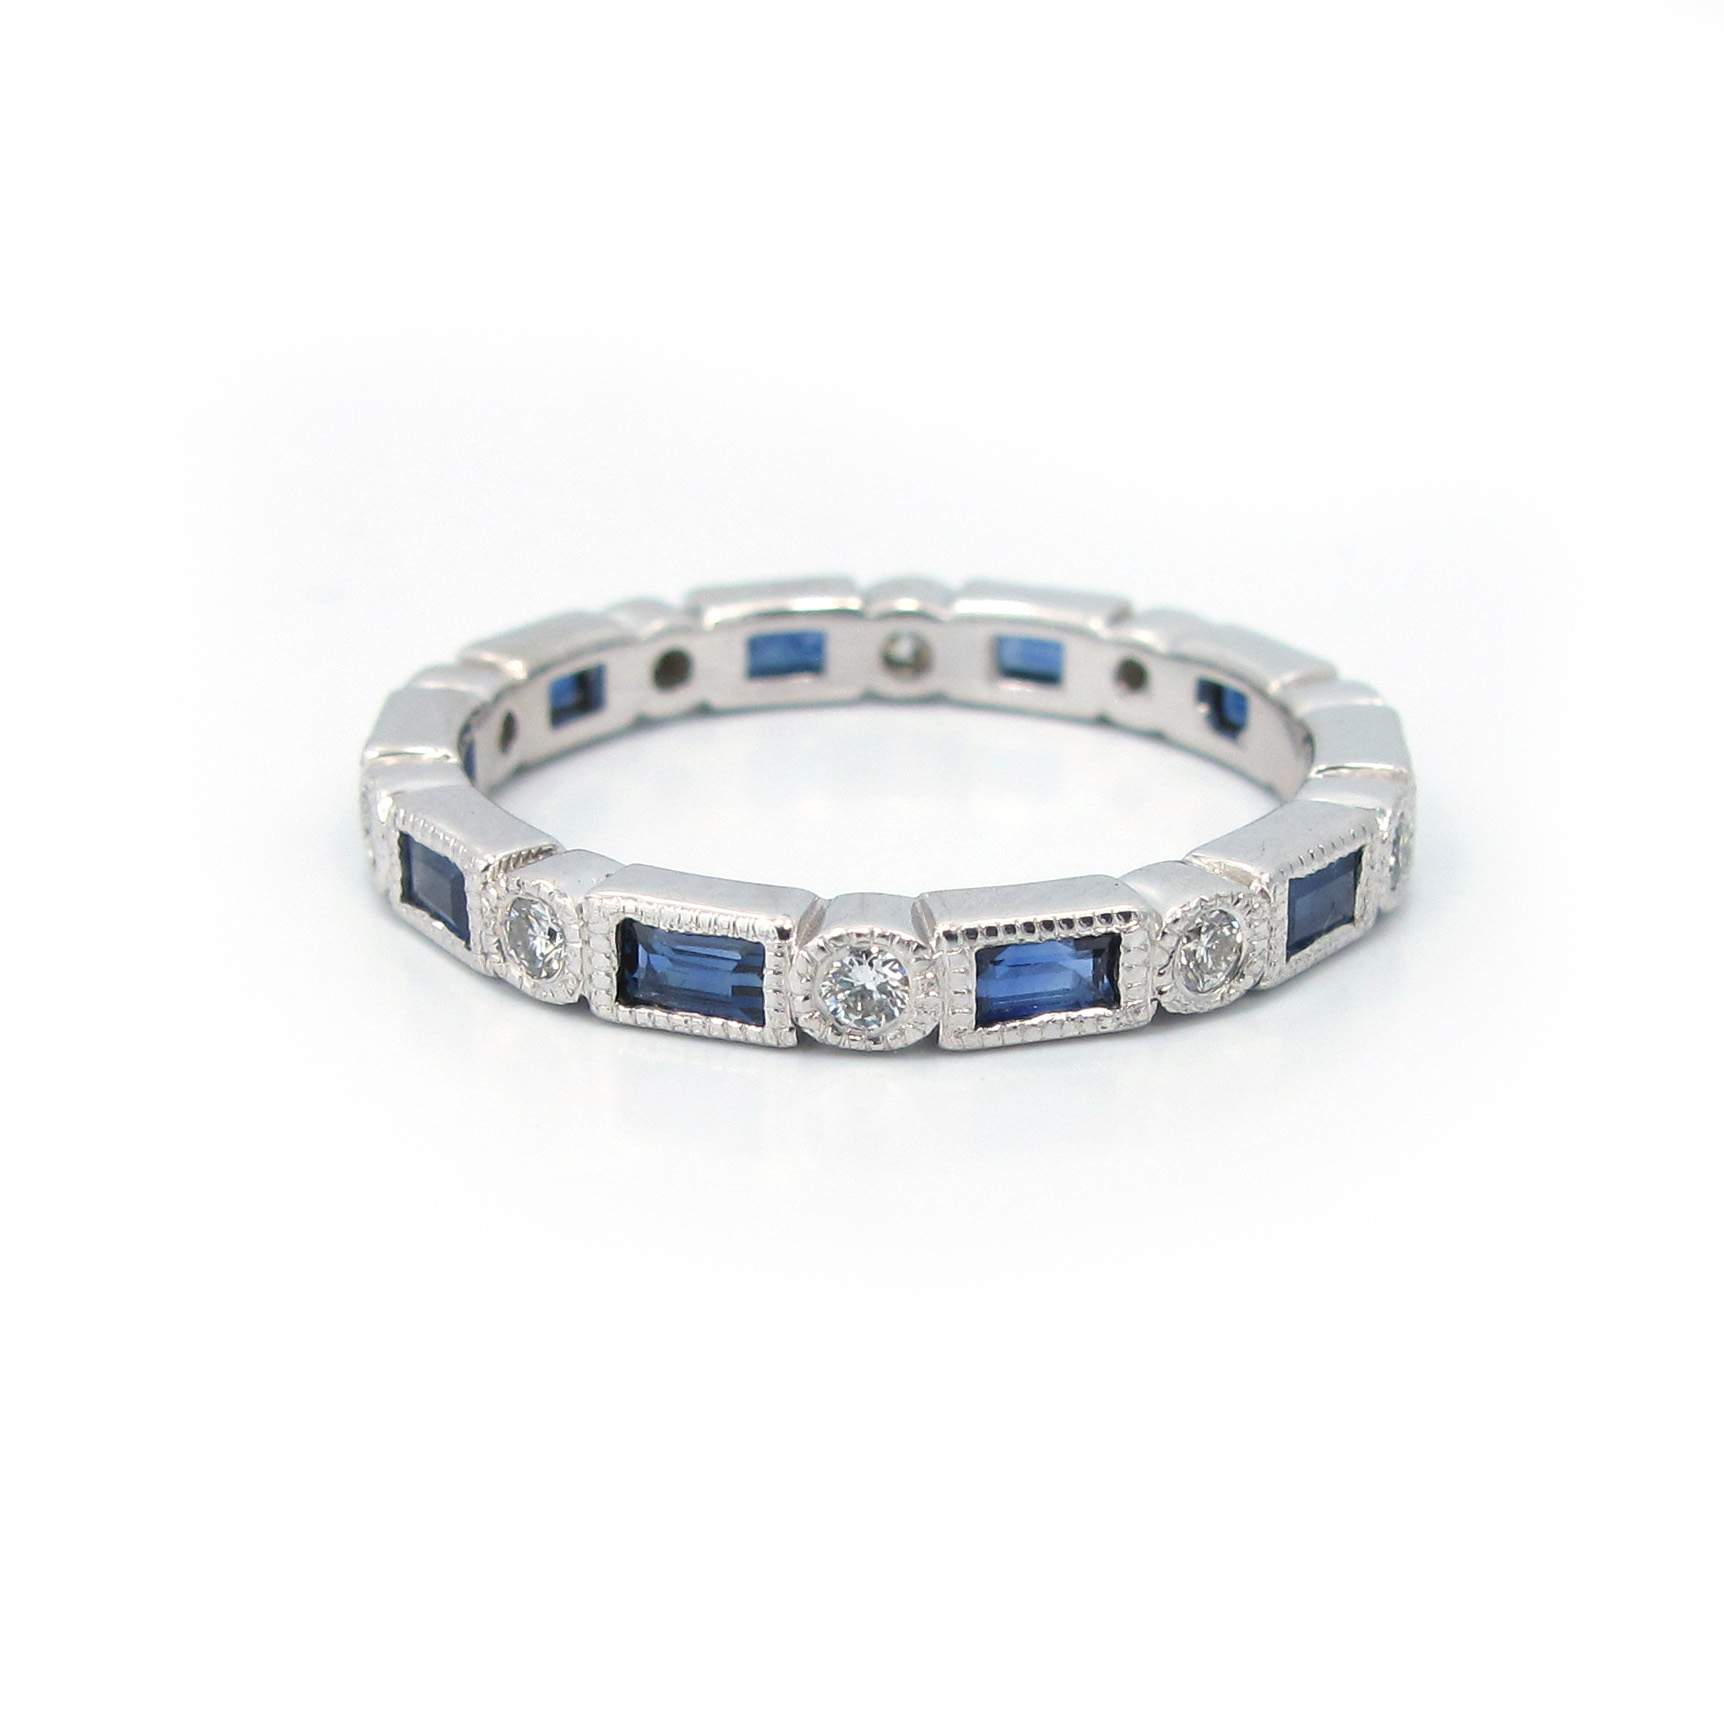 eternity tiffany co diamond a and ring platinum sapphire bands jewelry band embrace